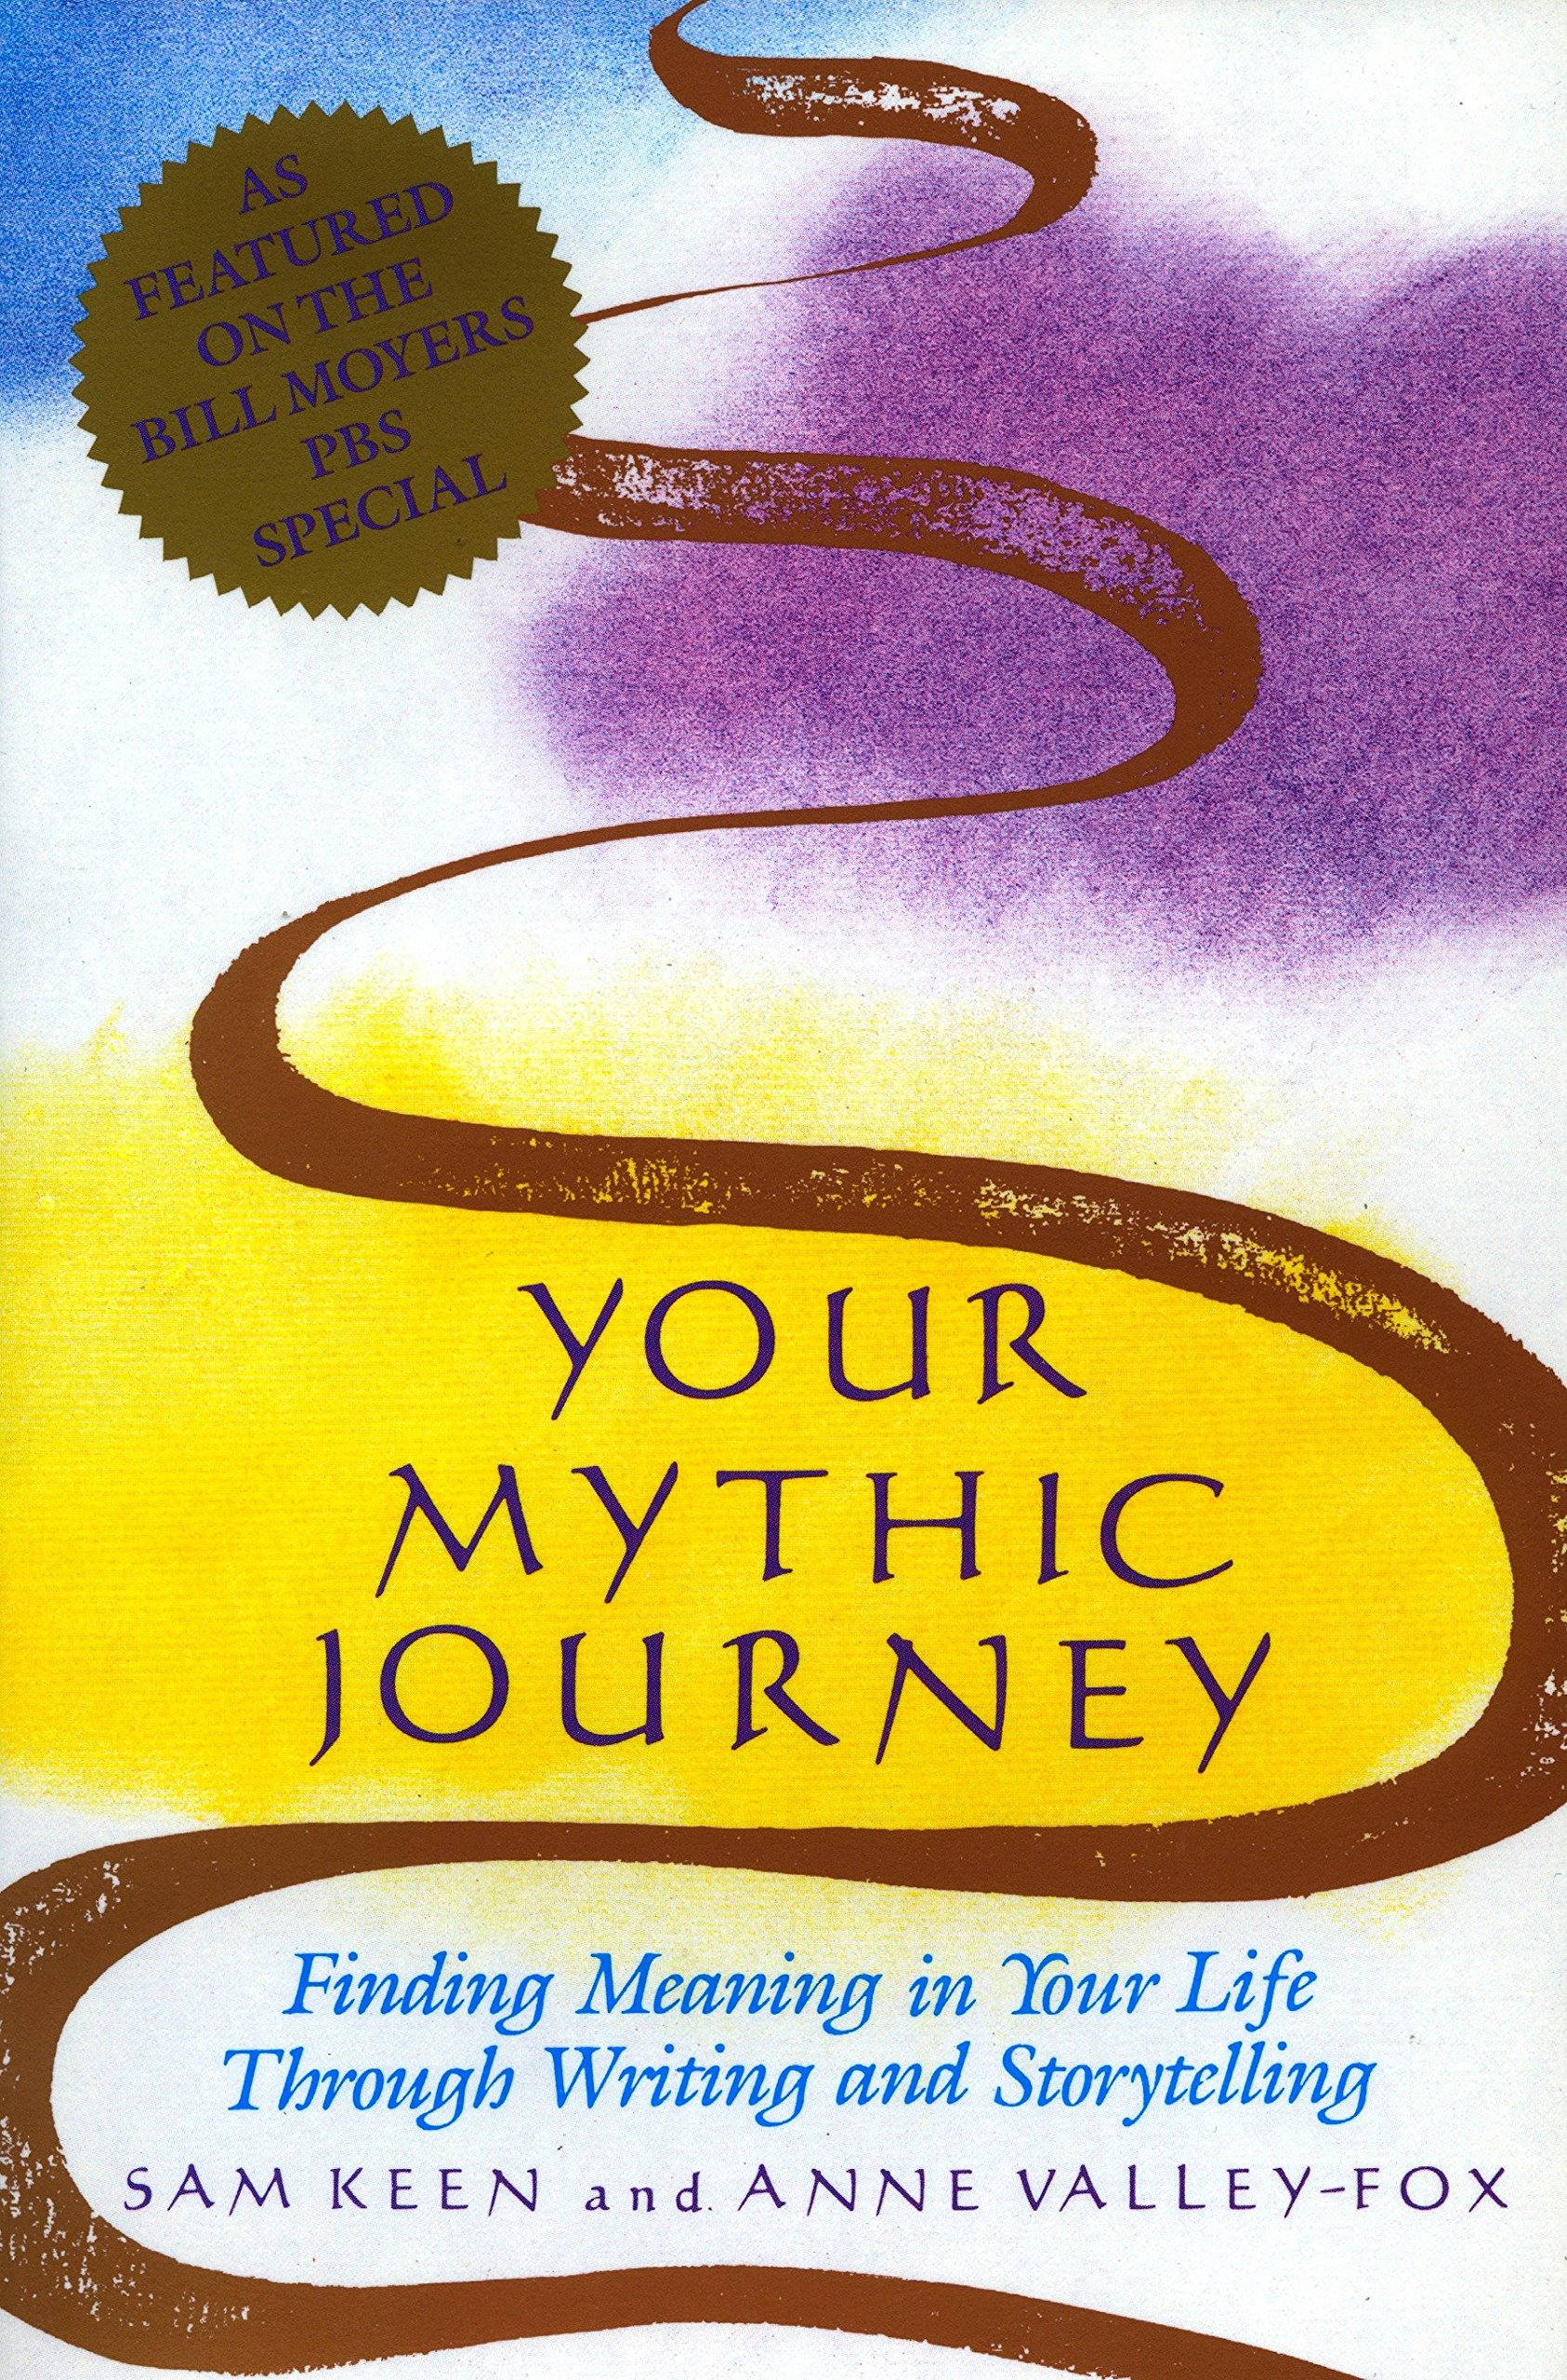 Your Mythic Journey: Finding Meaning in Your Life Through Writing and  Storytelling (Inner Work Book): Sam Keen, Anne Valley-Fox: 9780874775433:  Amazon.com: ...